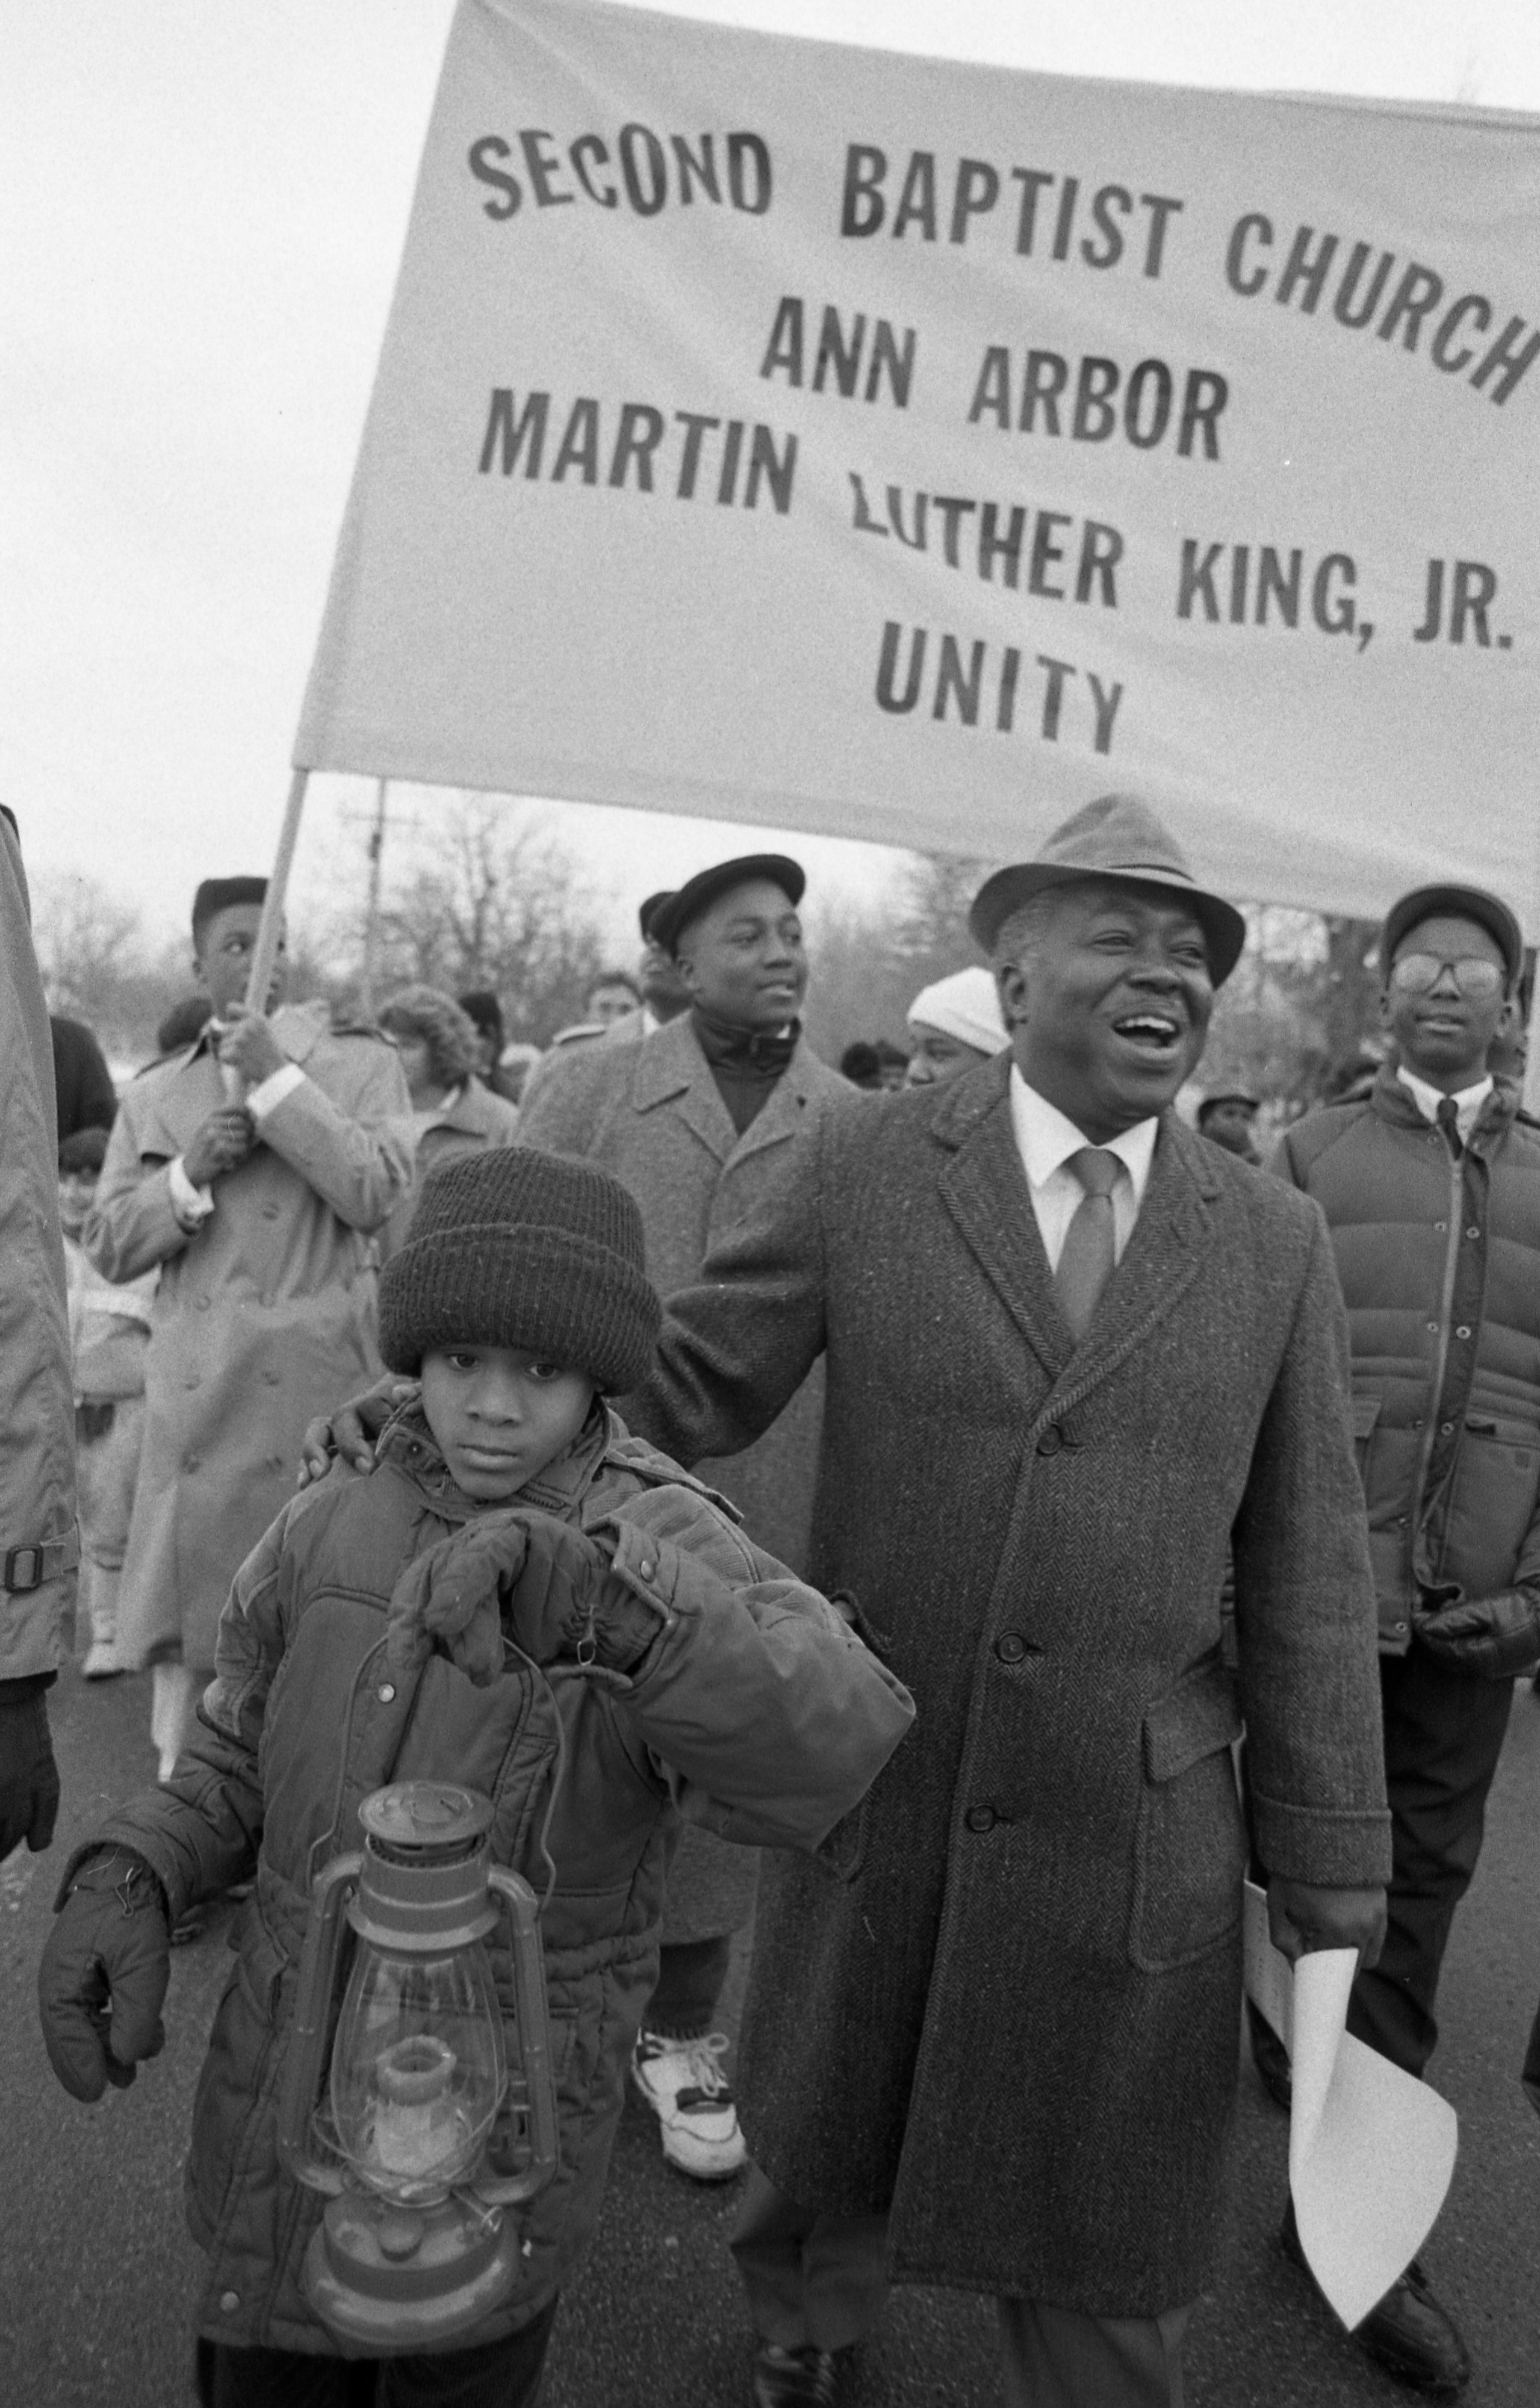 7th Annual Martin Luther King Jr. Unity Marchers, January 1989 image